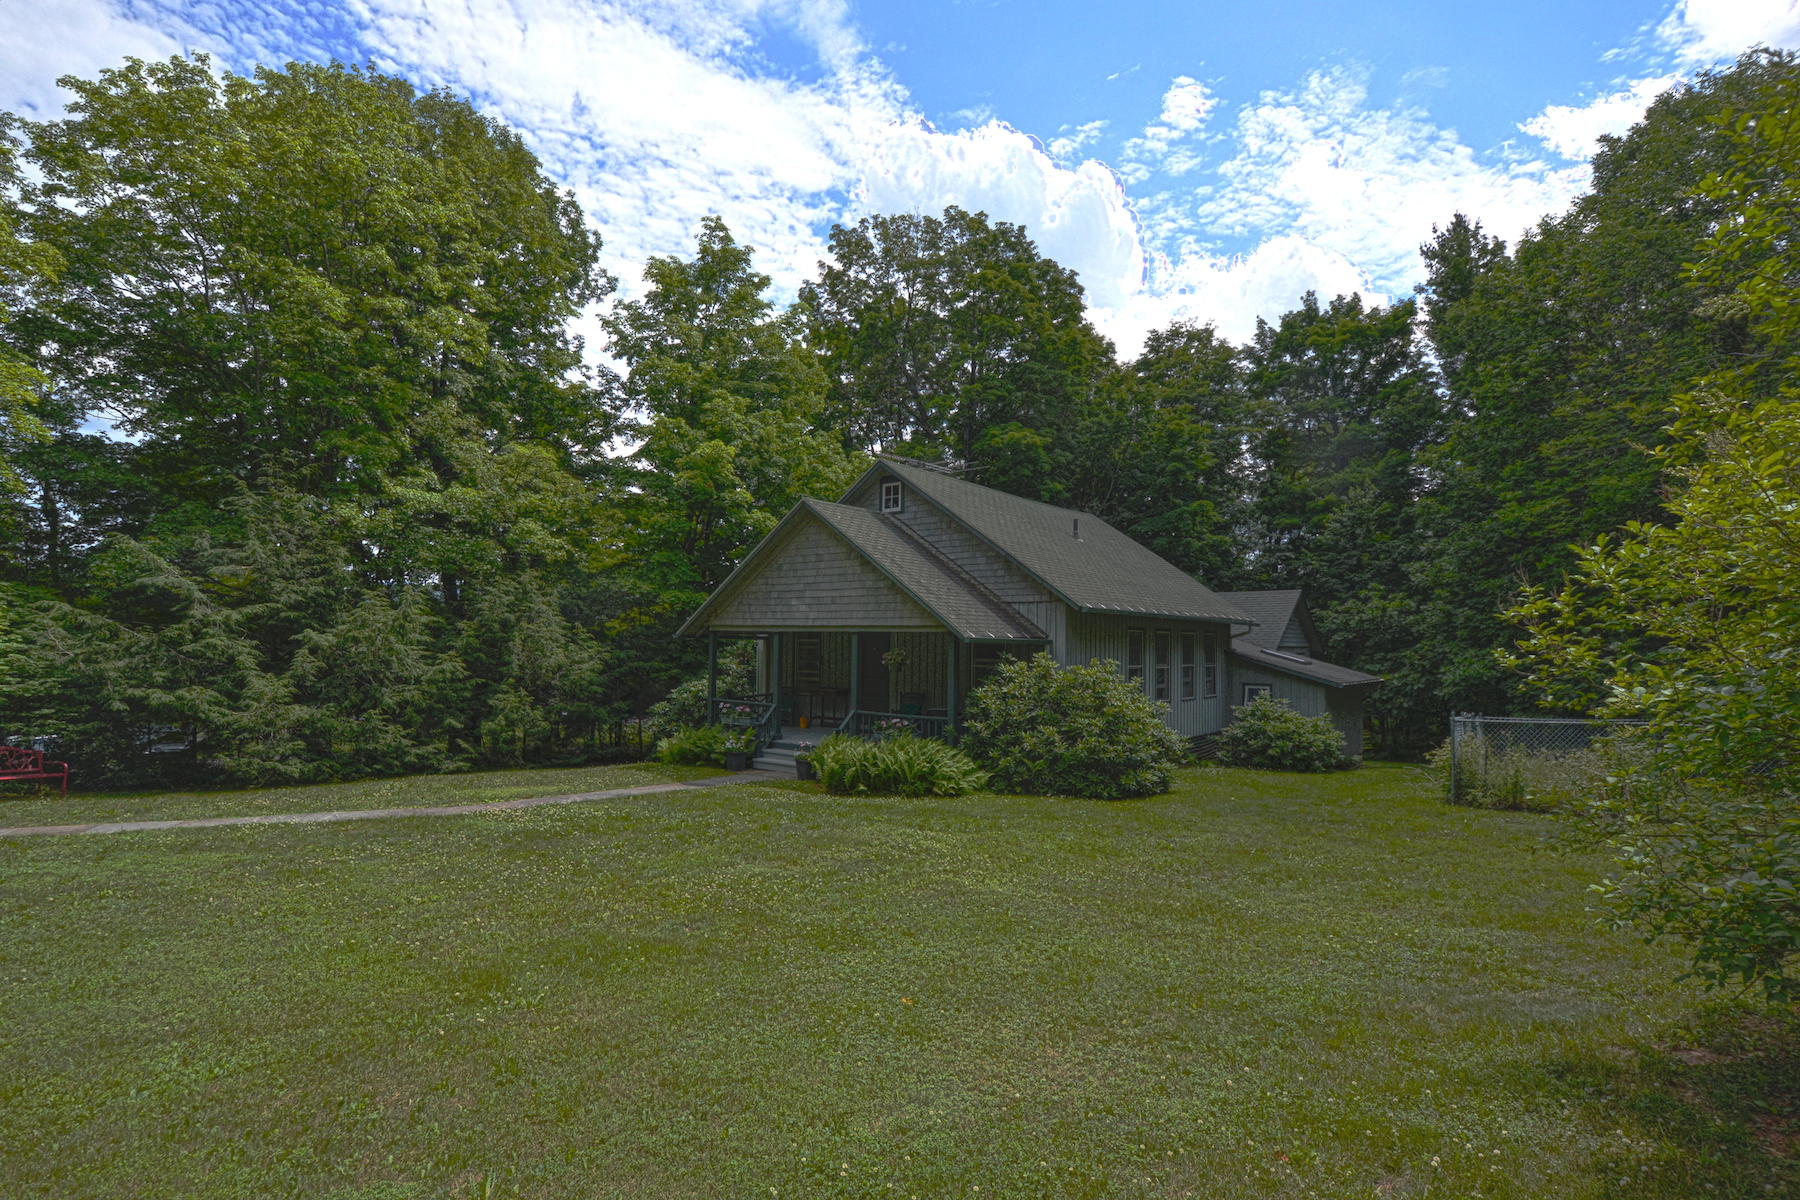 Additional photo for property listing at Onteora Park Cottage 35  Minwawa Tannersville, Nueva York 12485 Estados Unidos